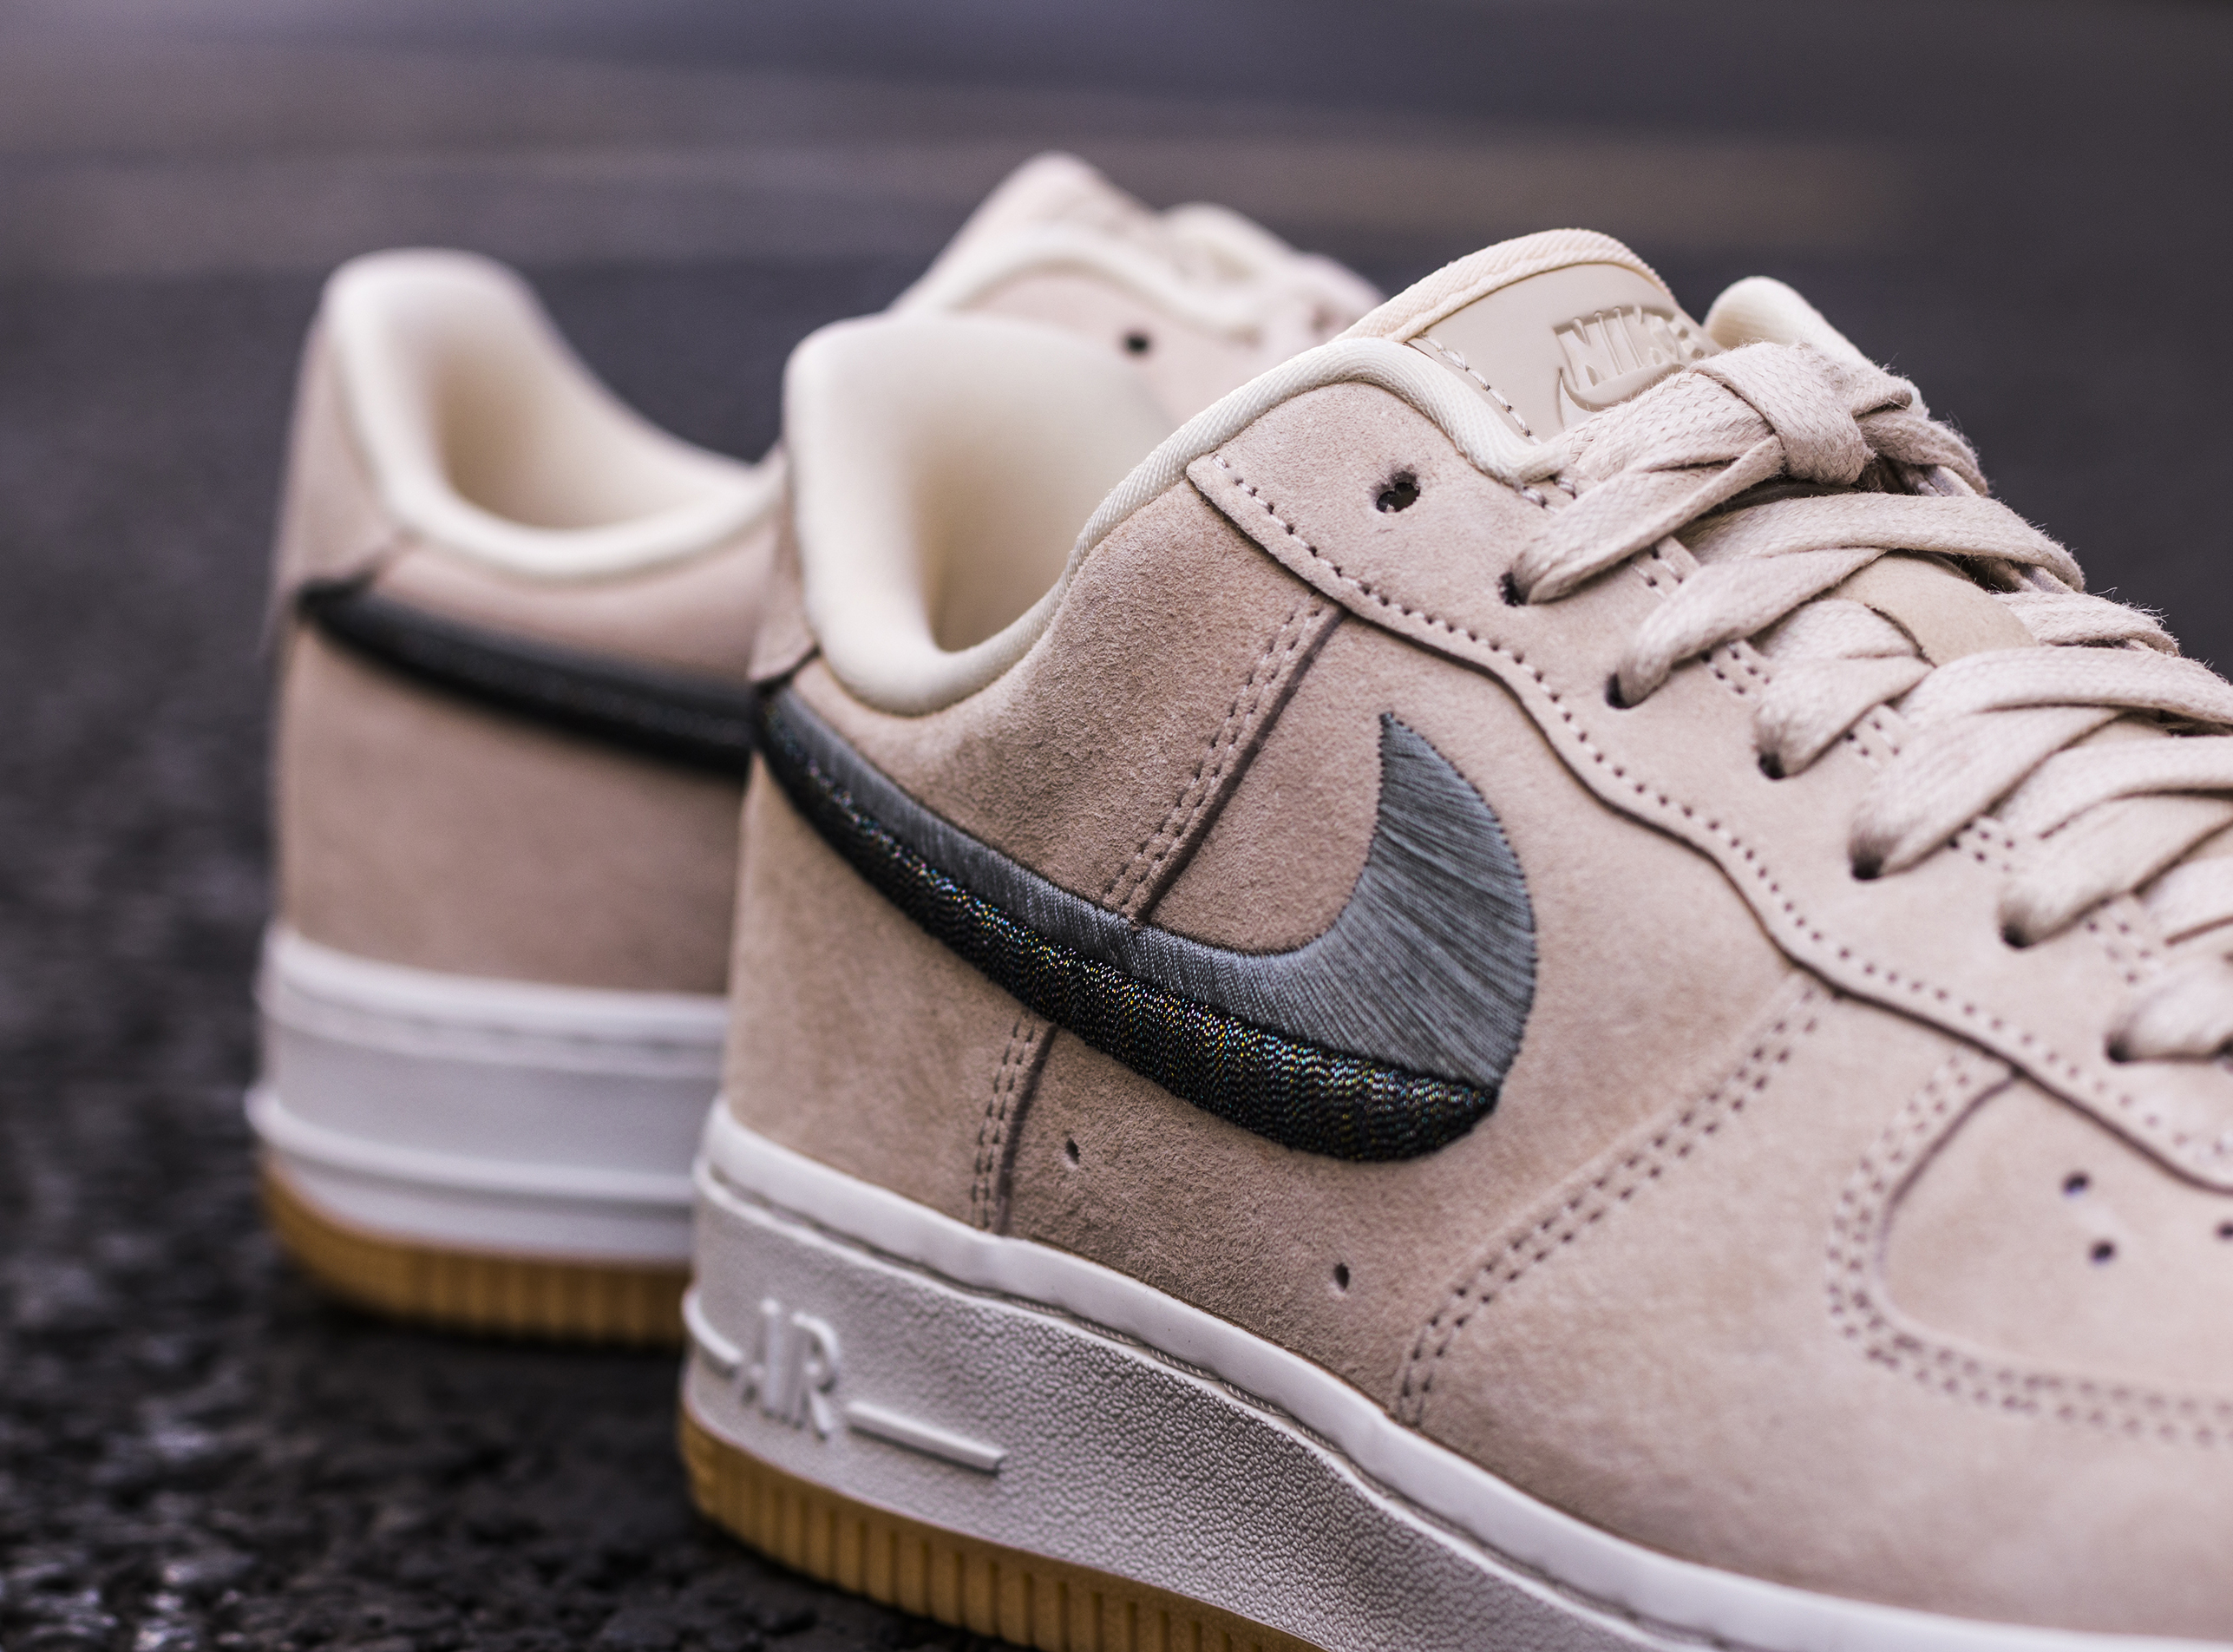 Nike Wmns Air Force 1 '07 LX « Two Toned Swoosh